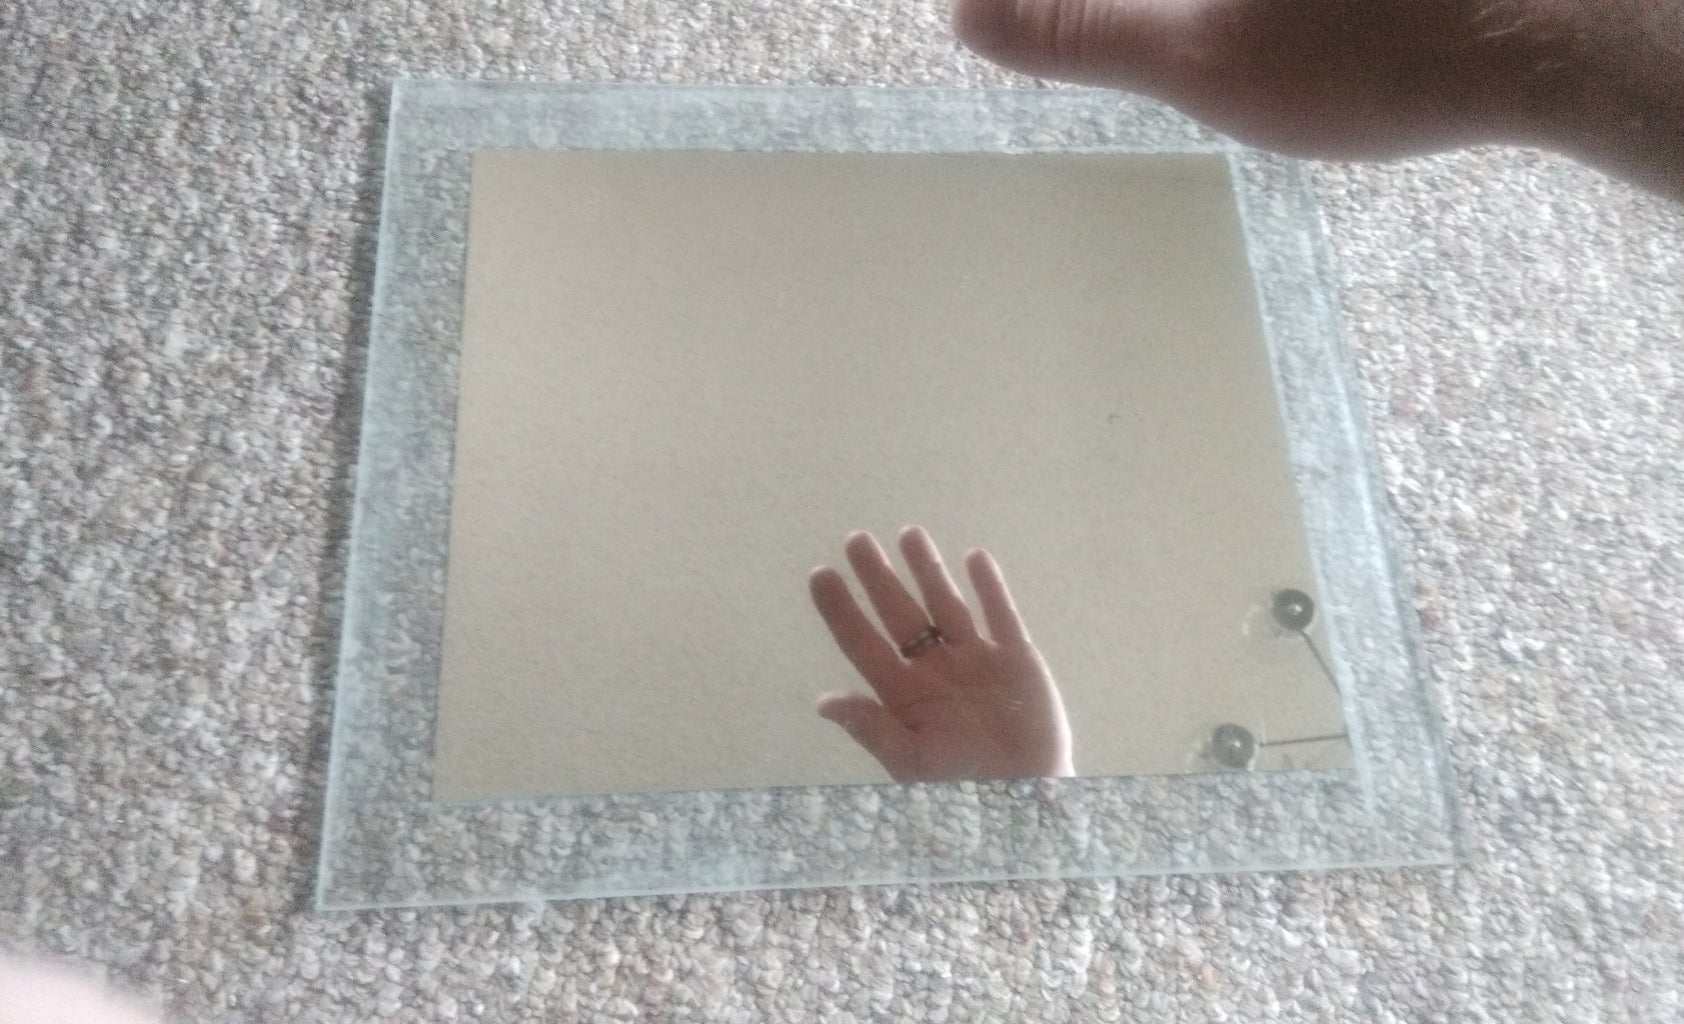 Second Step to Sanding the Mirror